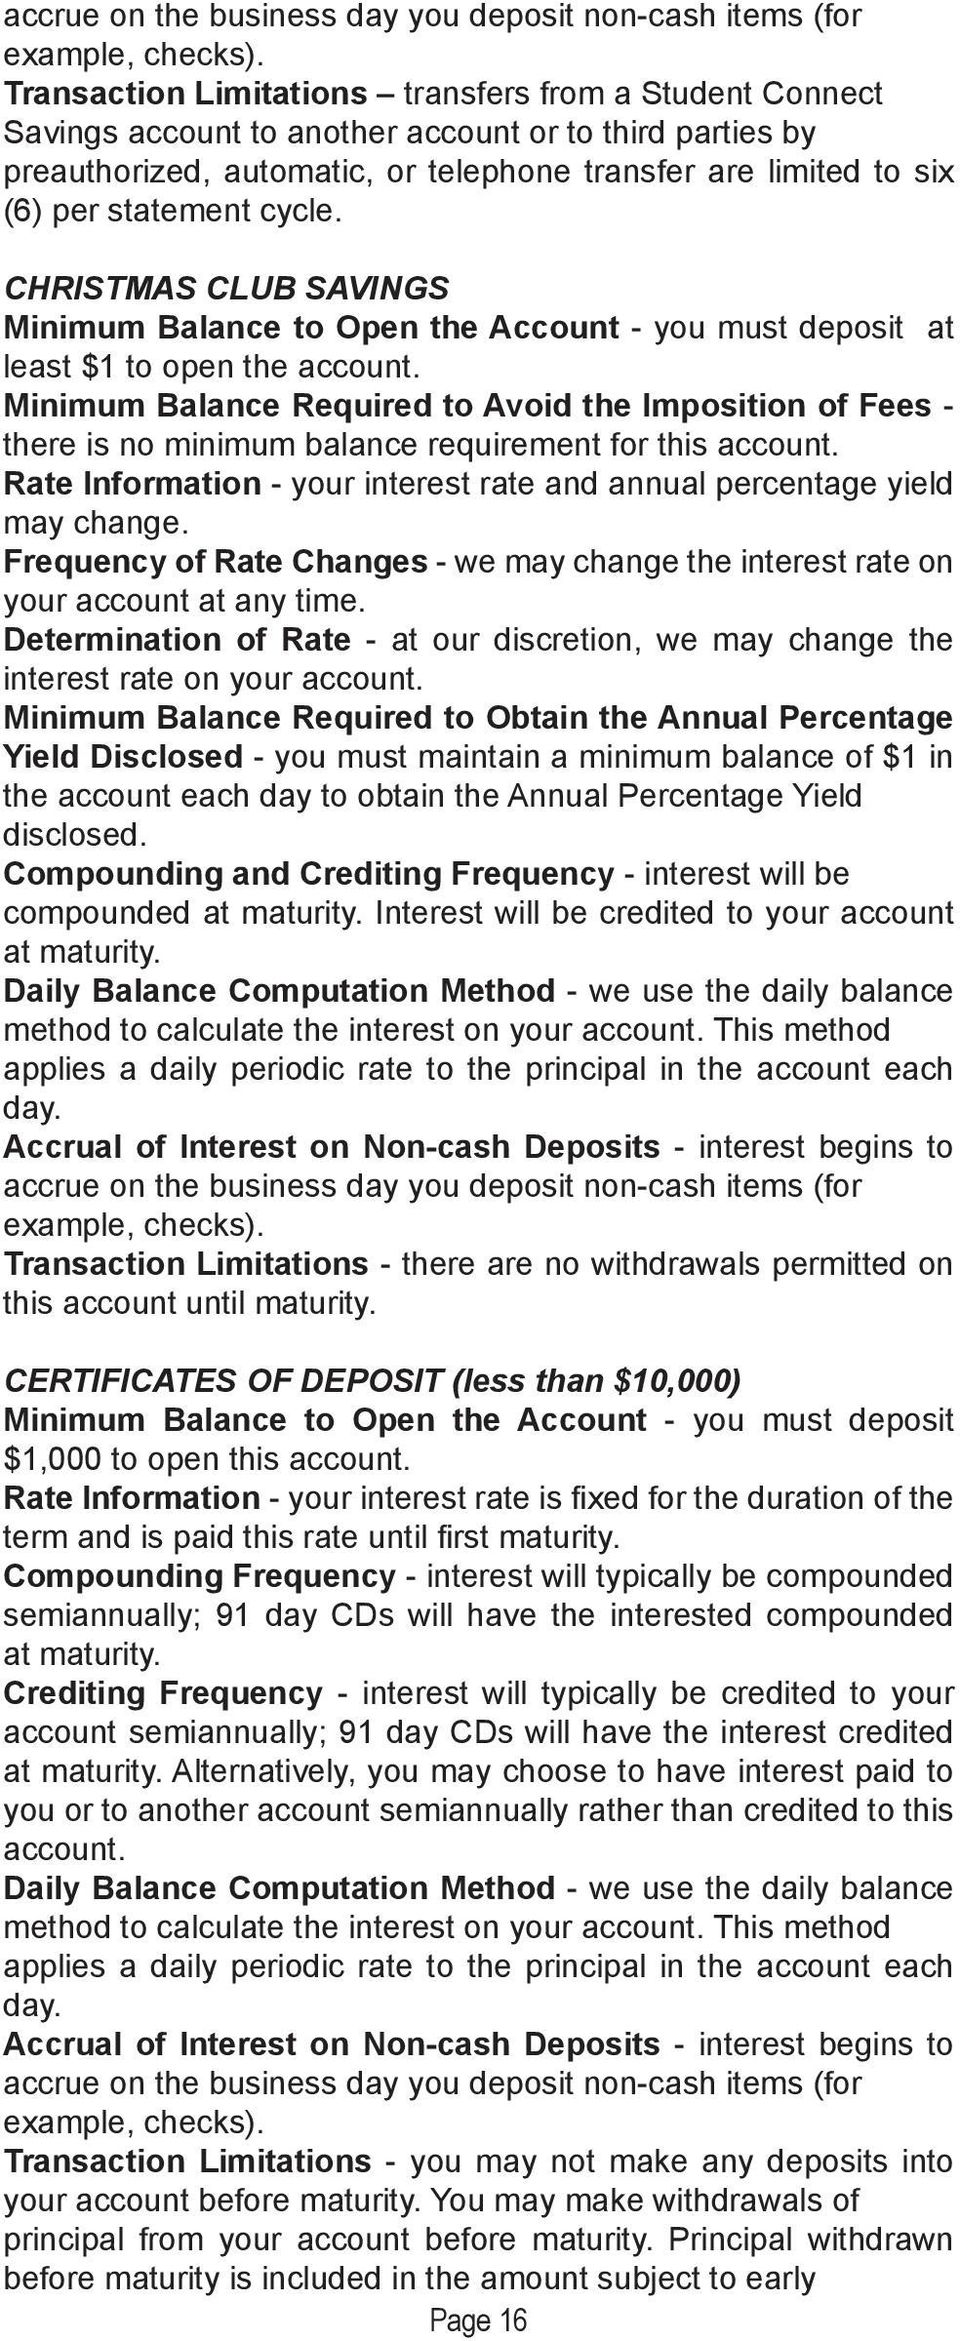 cycle. CHRISTMAS CLUB SAVINGS Minimum Balance to Open the Account - you must deposit at least $1 to open the account.